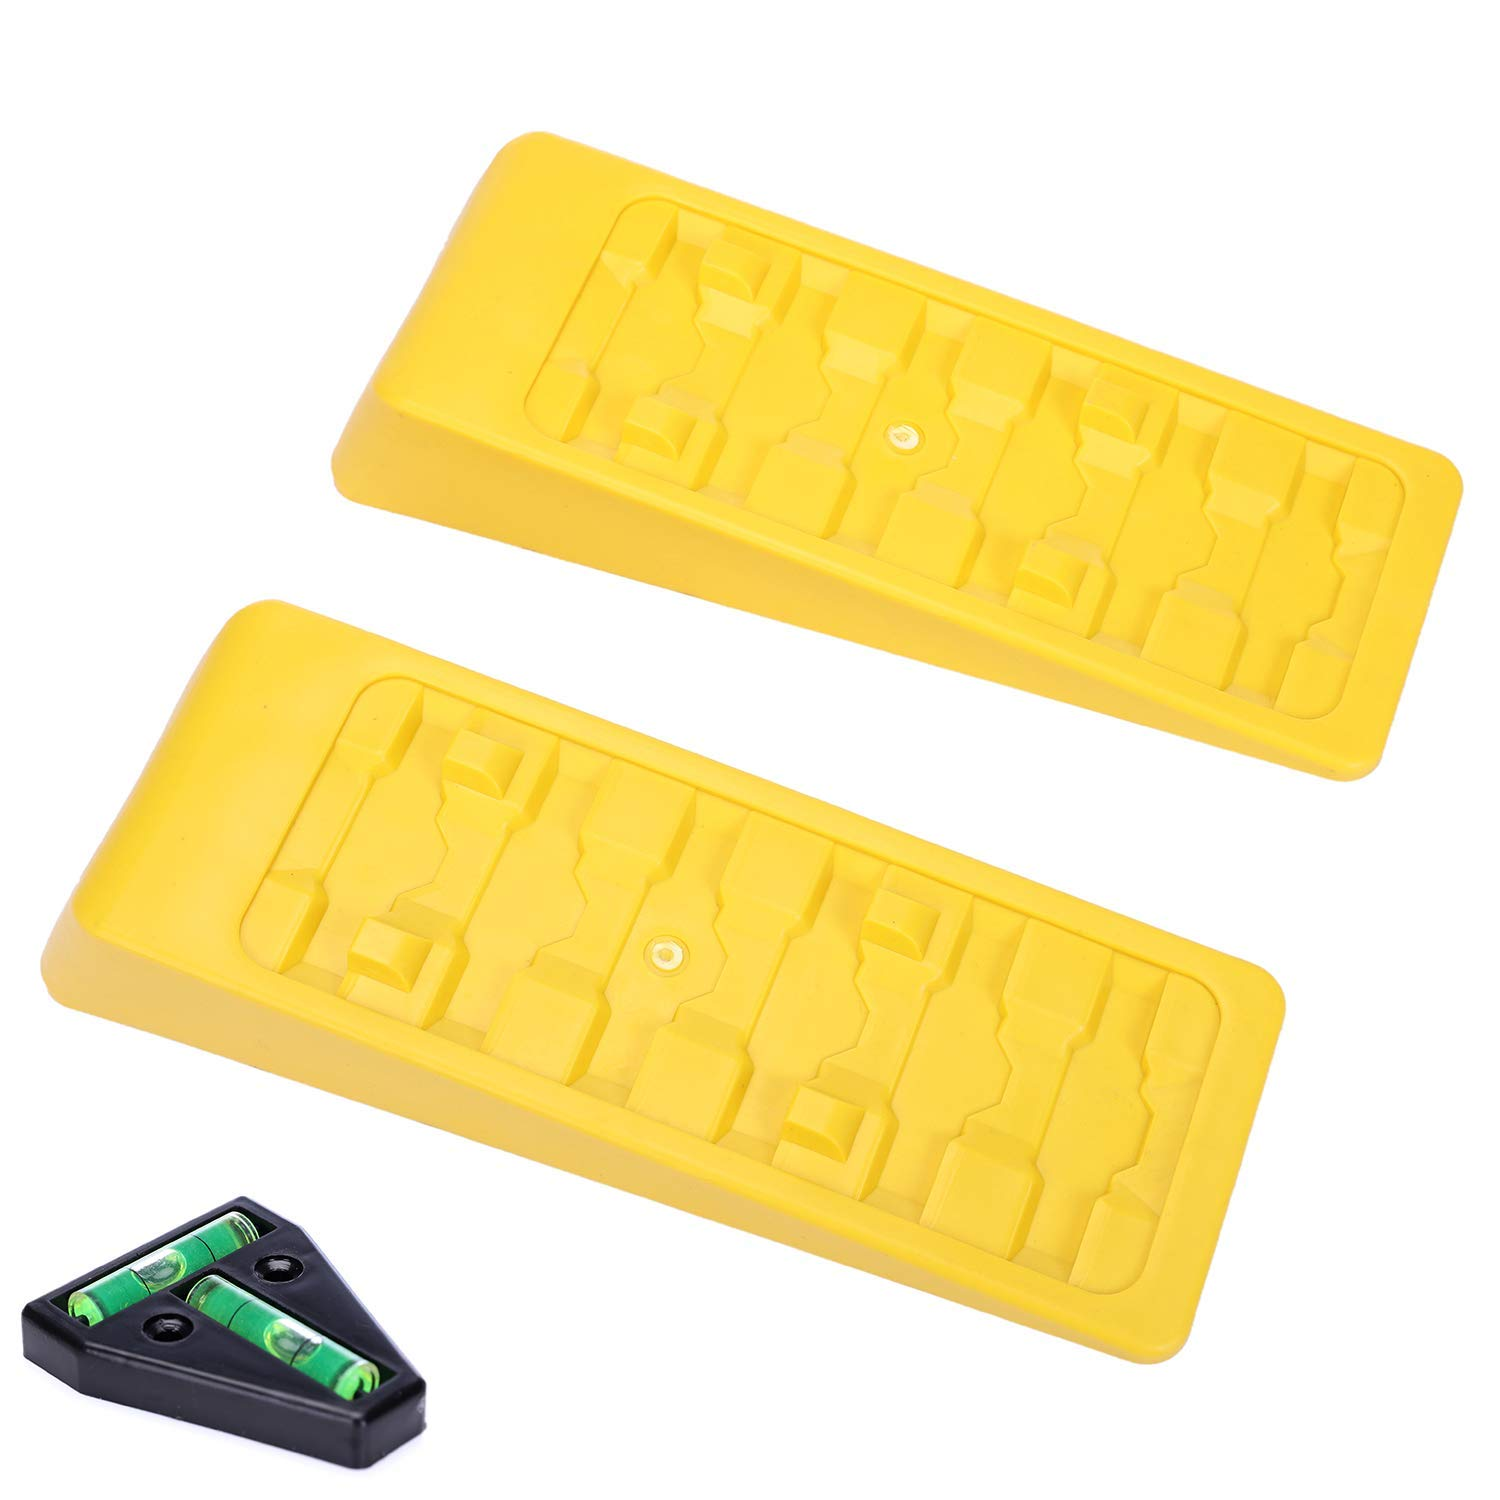 Tire Chocks for Caravan Truck Van SUV Cars 2 Pack Heavy Duty Camper Leveler Up to 3.8 inches Homeon Wheels RV Leveling Blocks Wheel Chocks Trailer Leveler Blocks for Trailers Campers